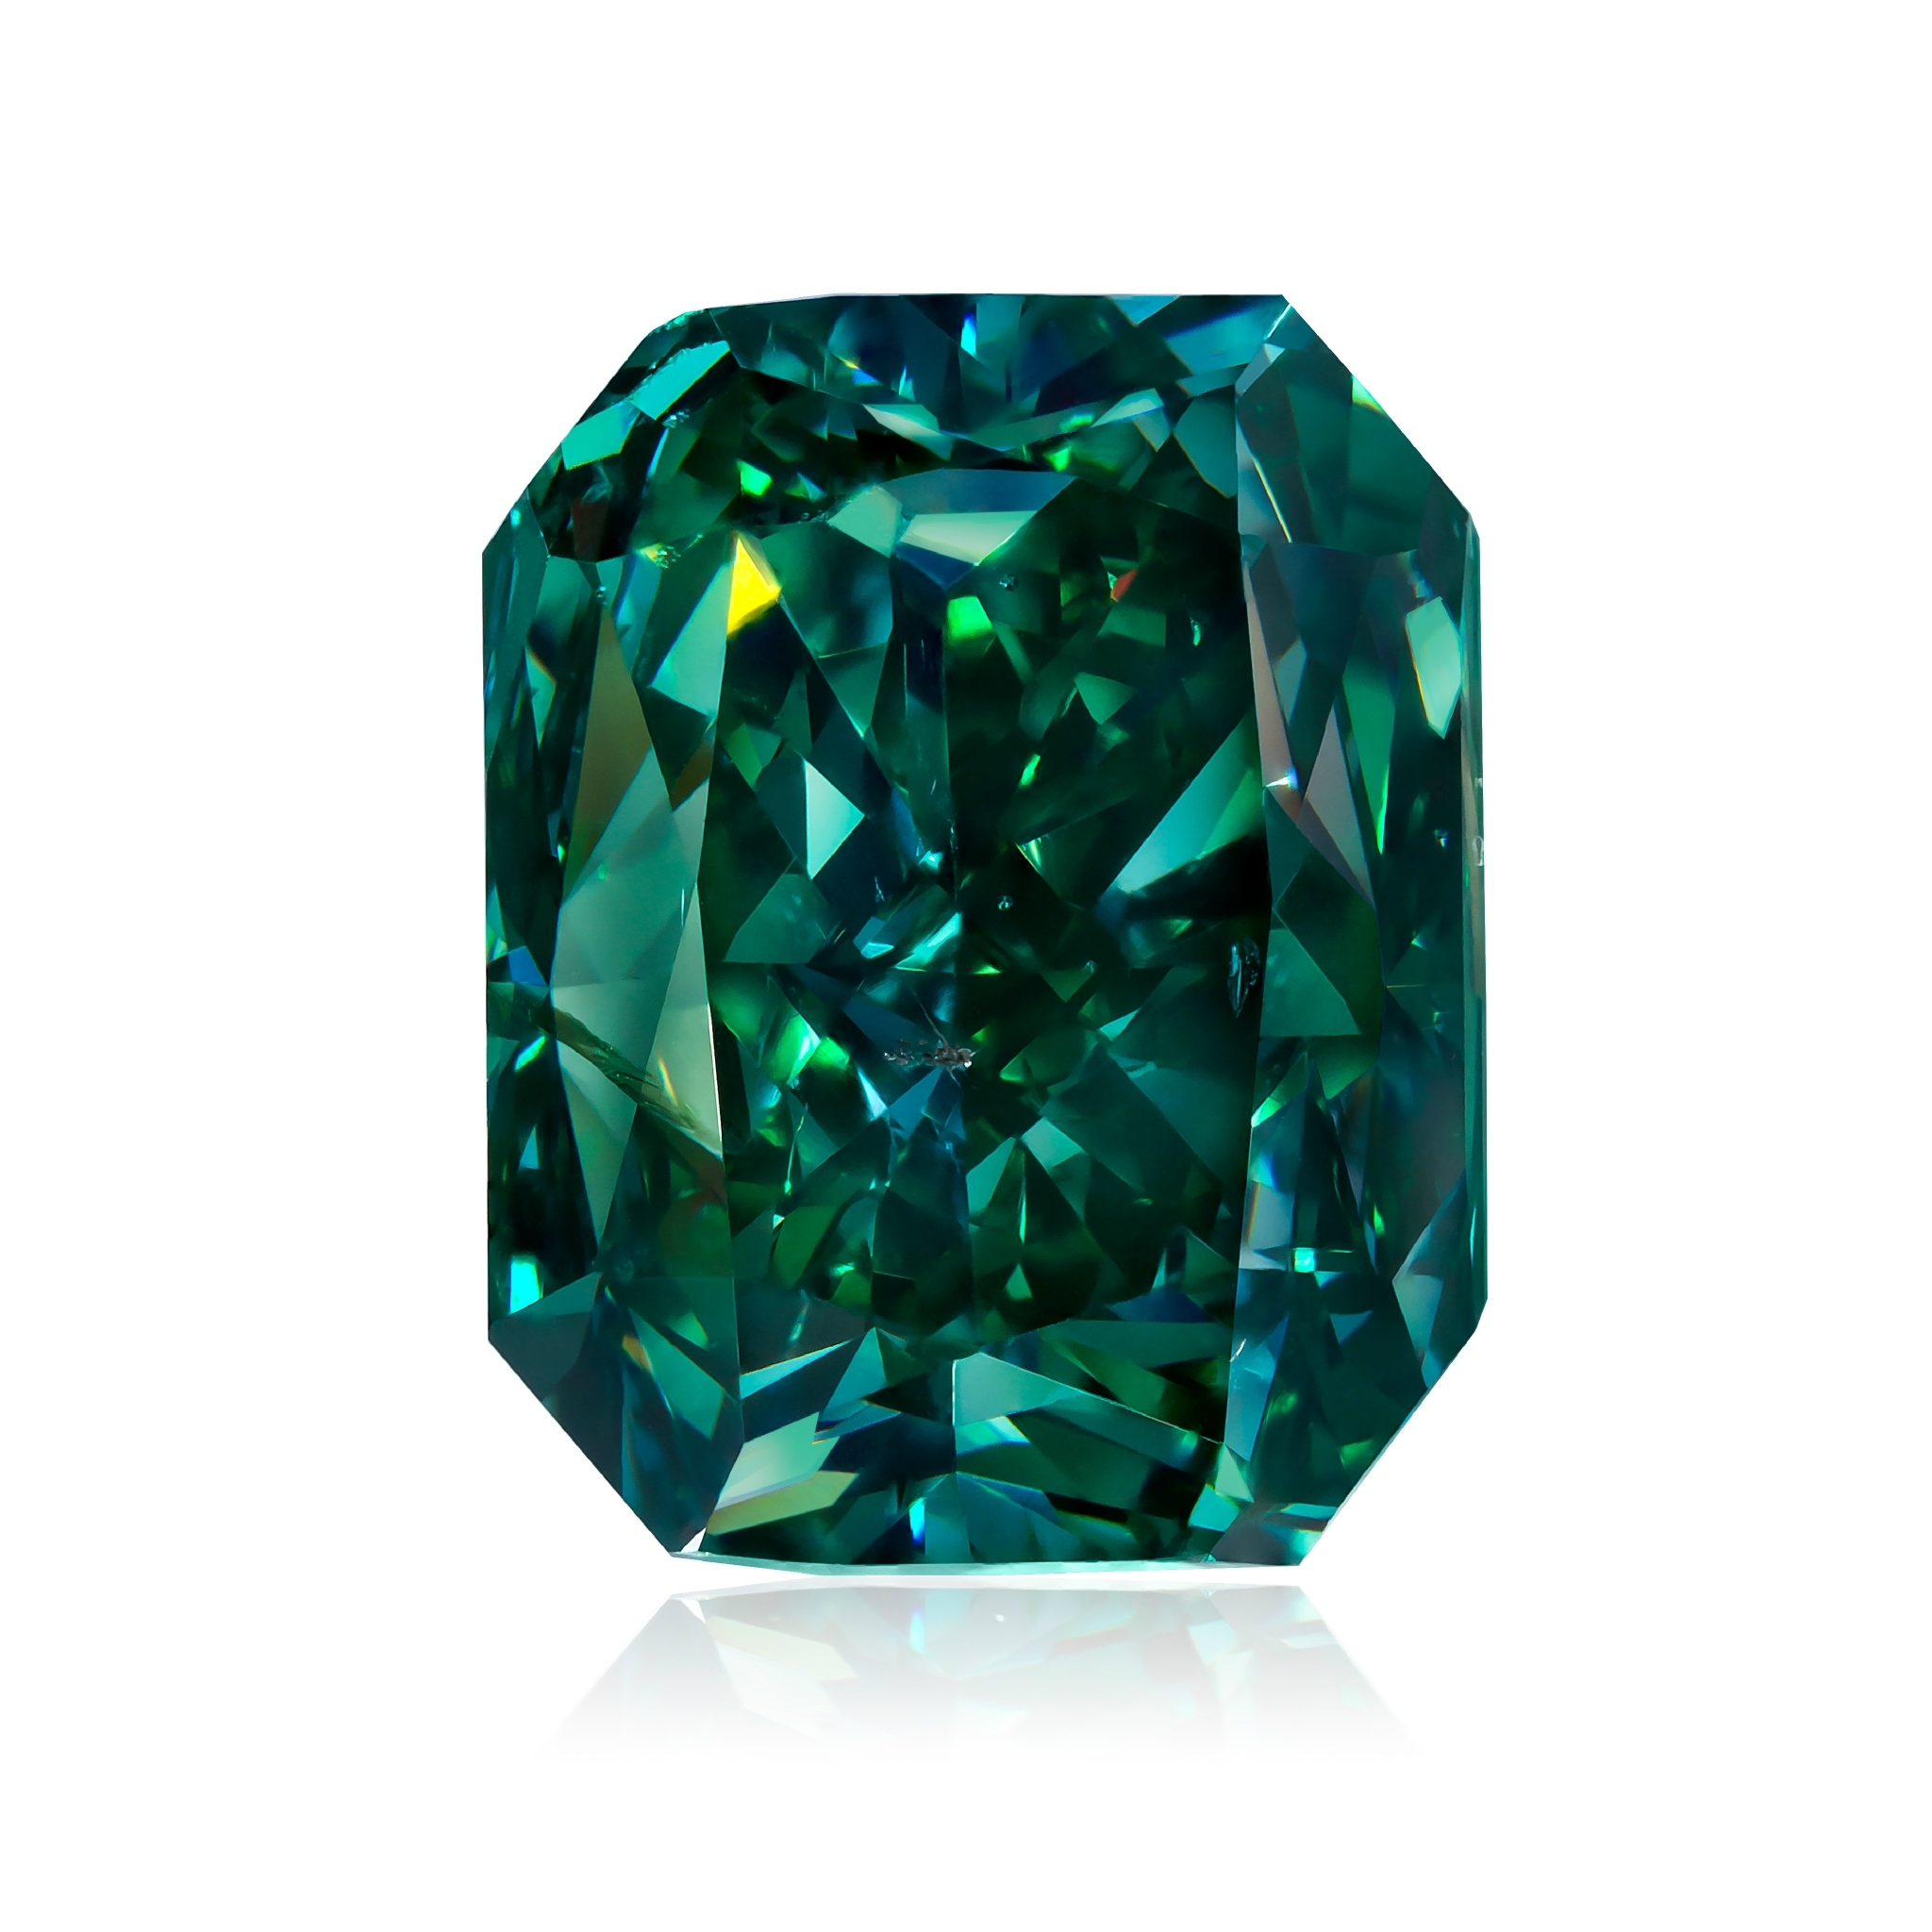 """""""The Shangri-La"""", a   3.88 Fancy Vivid Green diamond from The Optimum Gamma Green Collection, a collection of the most rare and prestigious natural green diamonds in the world, with more than 50 stones accrued over 20 years. Image credit:    Optimum Diamonds LLC   , Copyright ©Digital Jewelry Photography"""